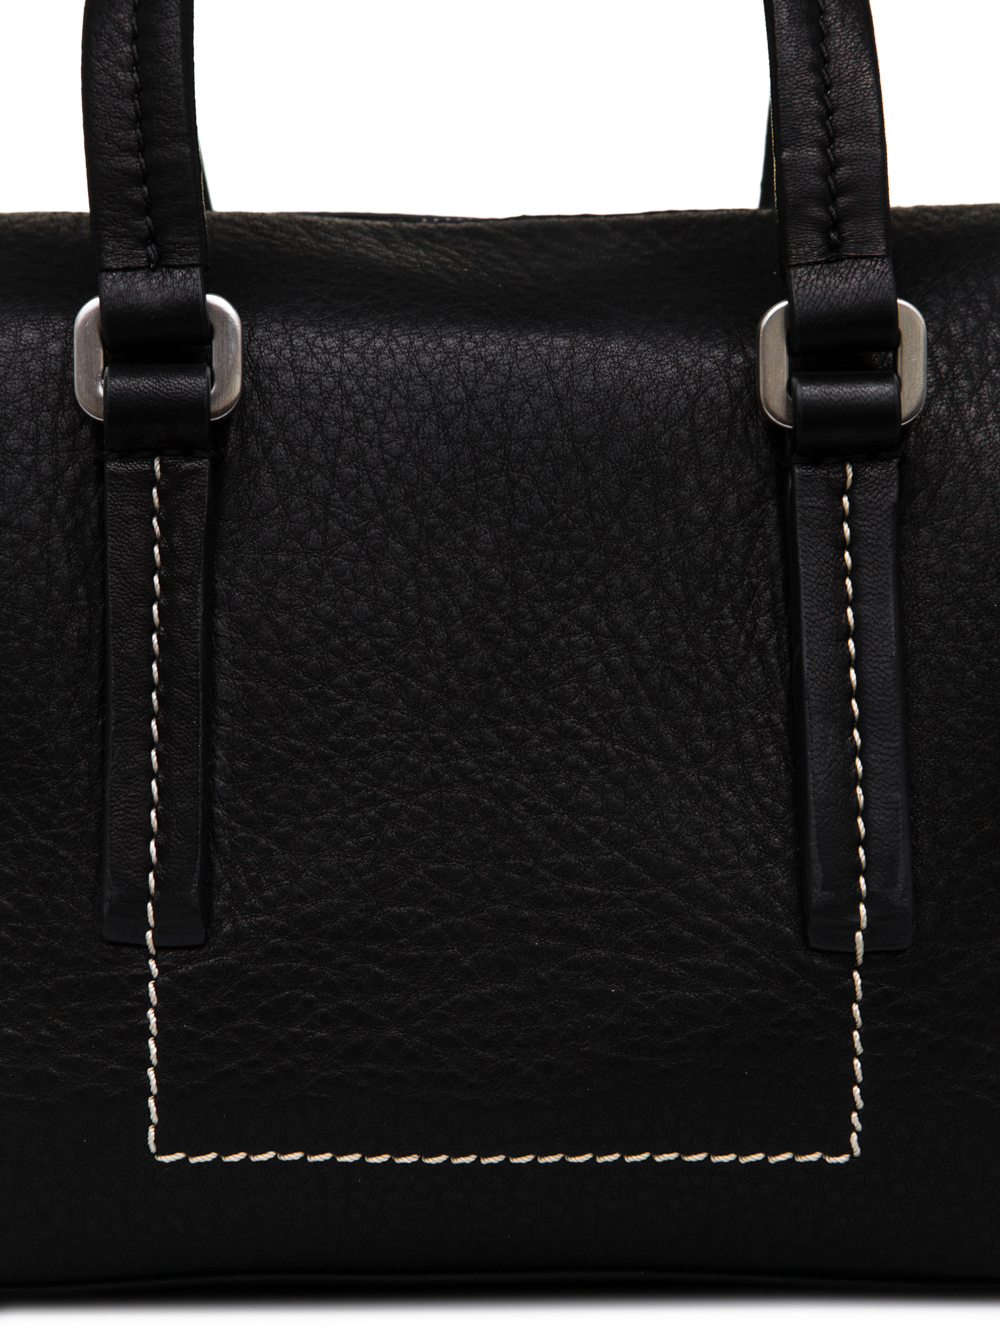 RICK OWENS FW18 SISYPHUS BABY BAG IN BLACK LAMB LEATHER